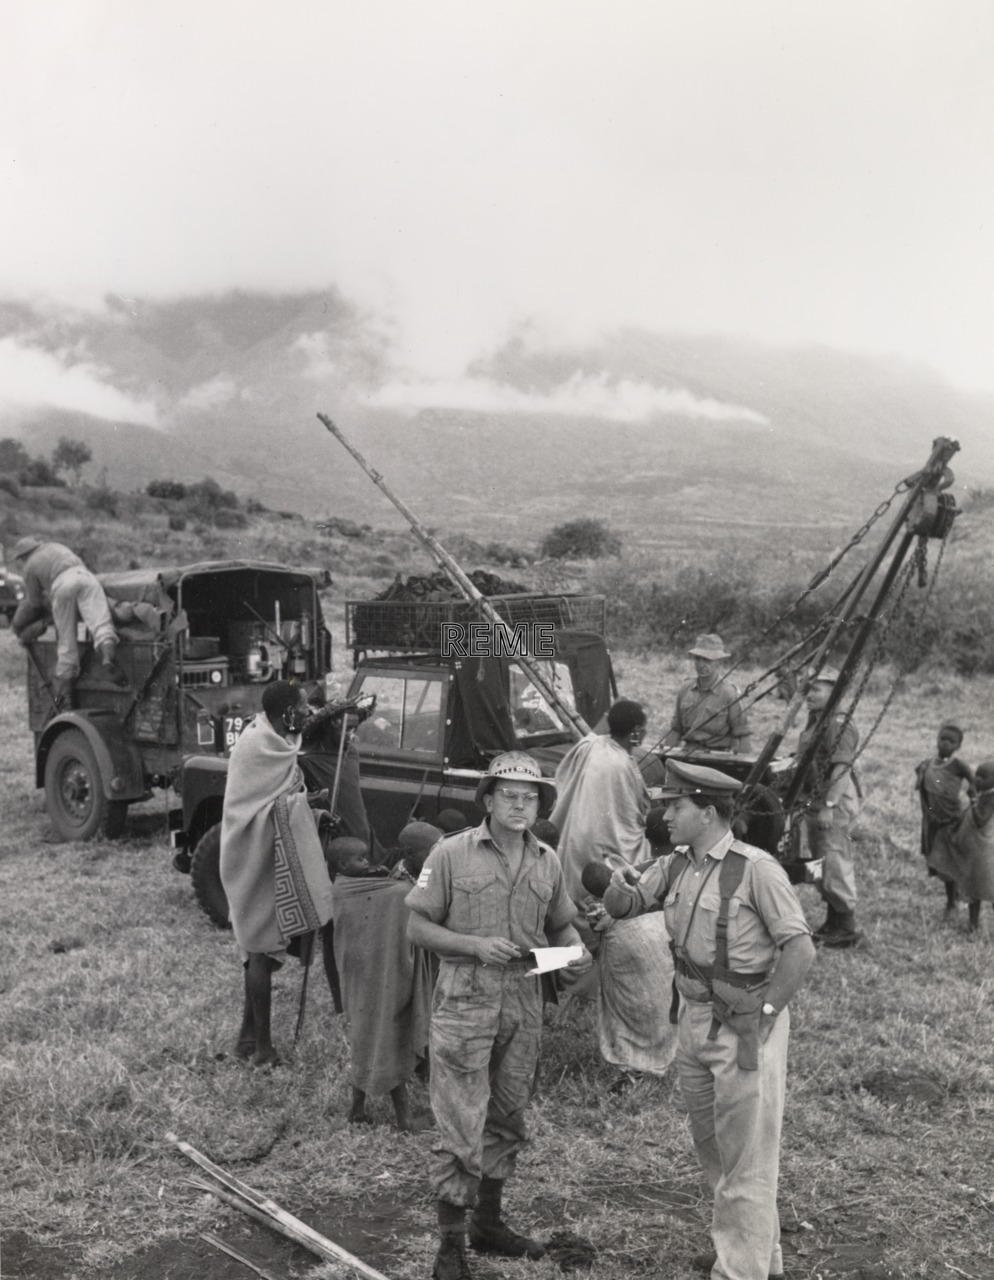 Recovery Exercise, Rift Valley, Ngong Hills, Kenya, January 1963.